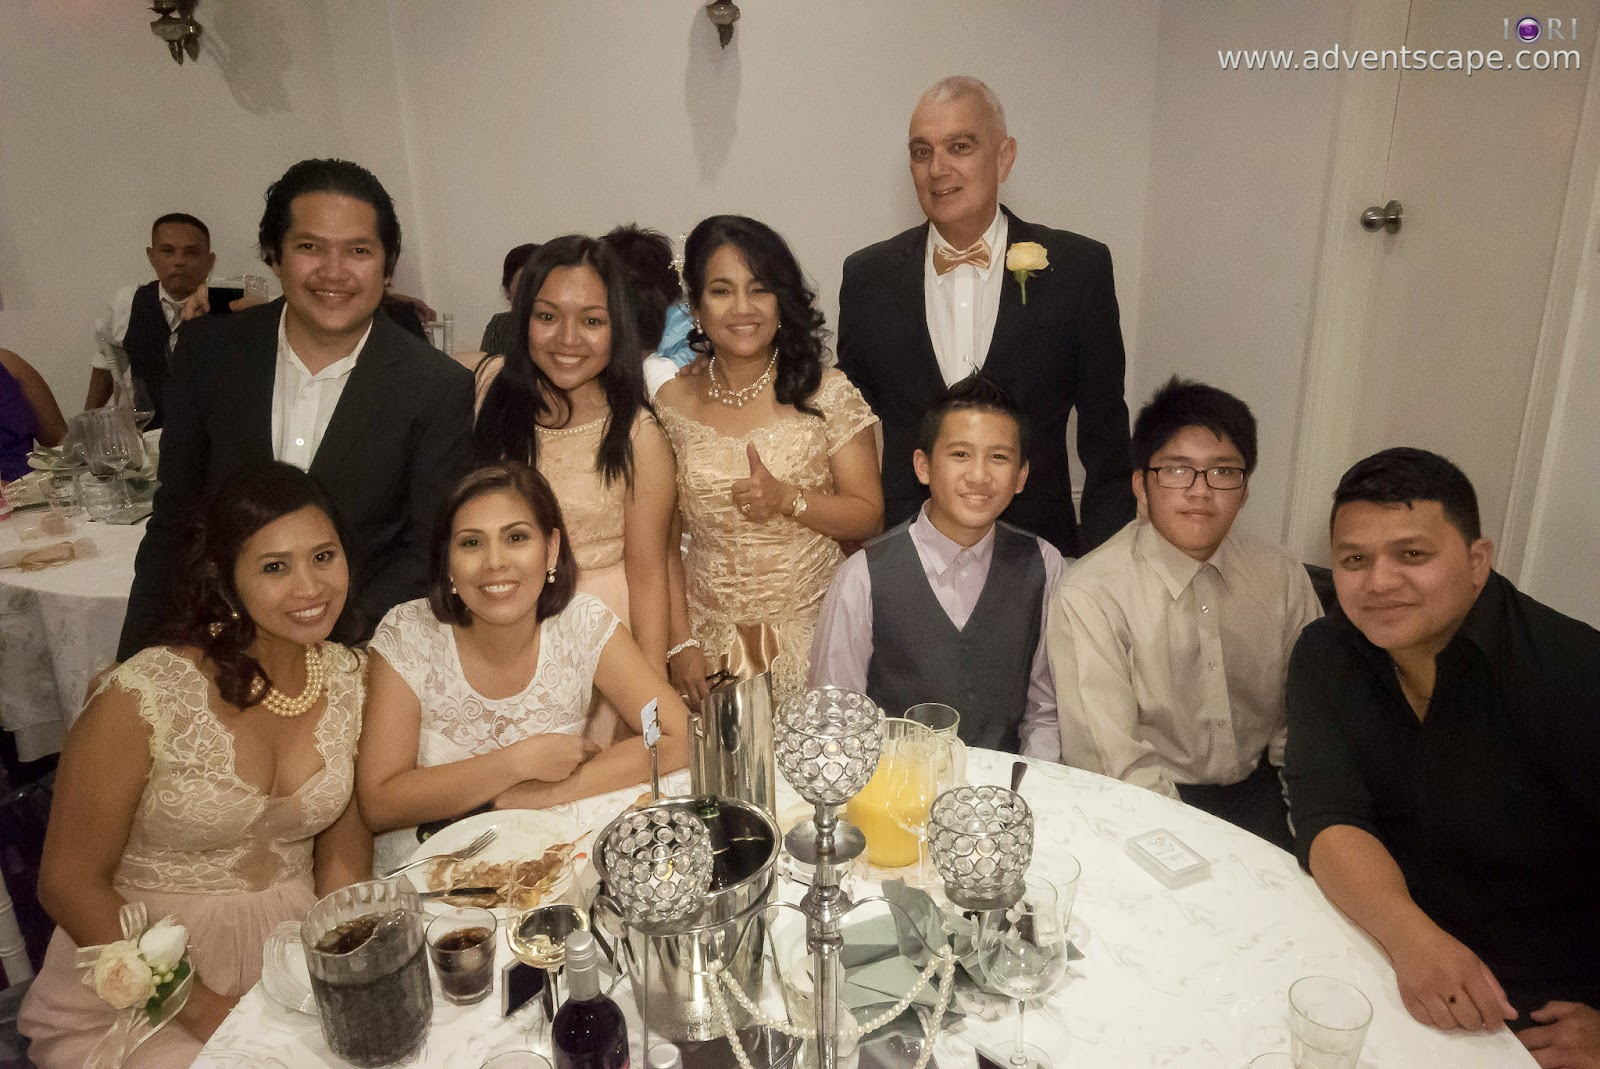 adventscape, Australia, Corke, Greystanes, iori, Jerry, New South Wales, NSW, Philip Avellana, Renewal of Vows, Tudor Lodge, wedding